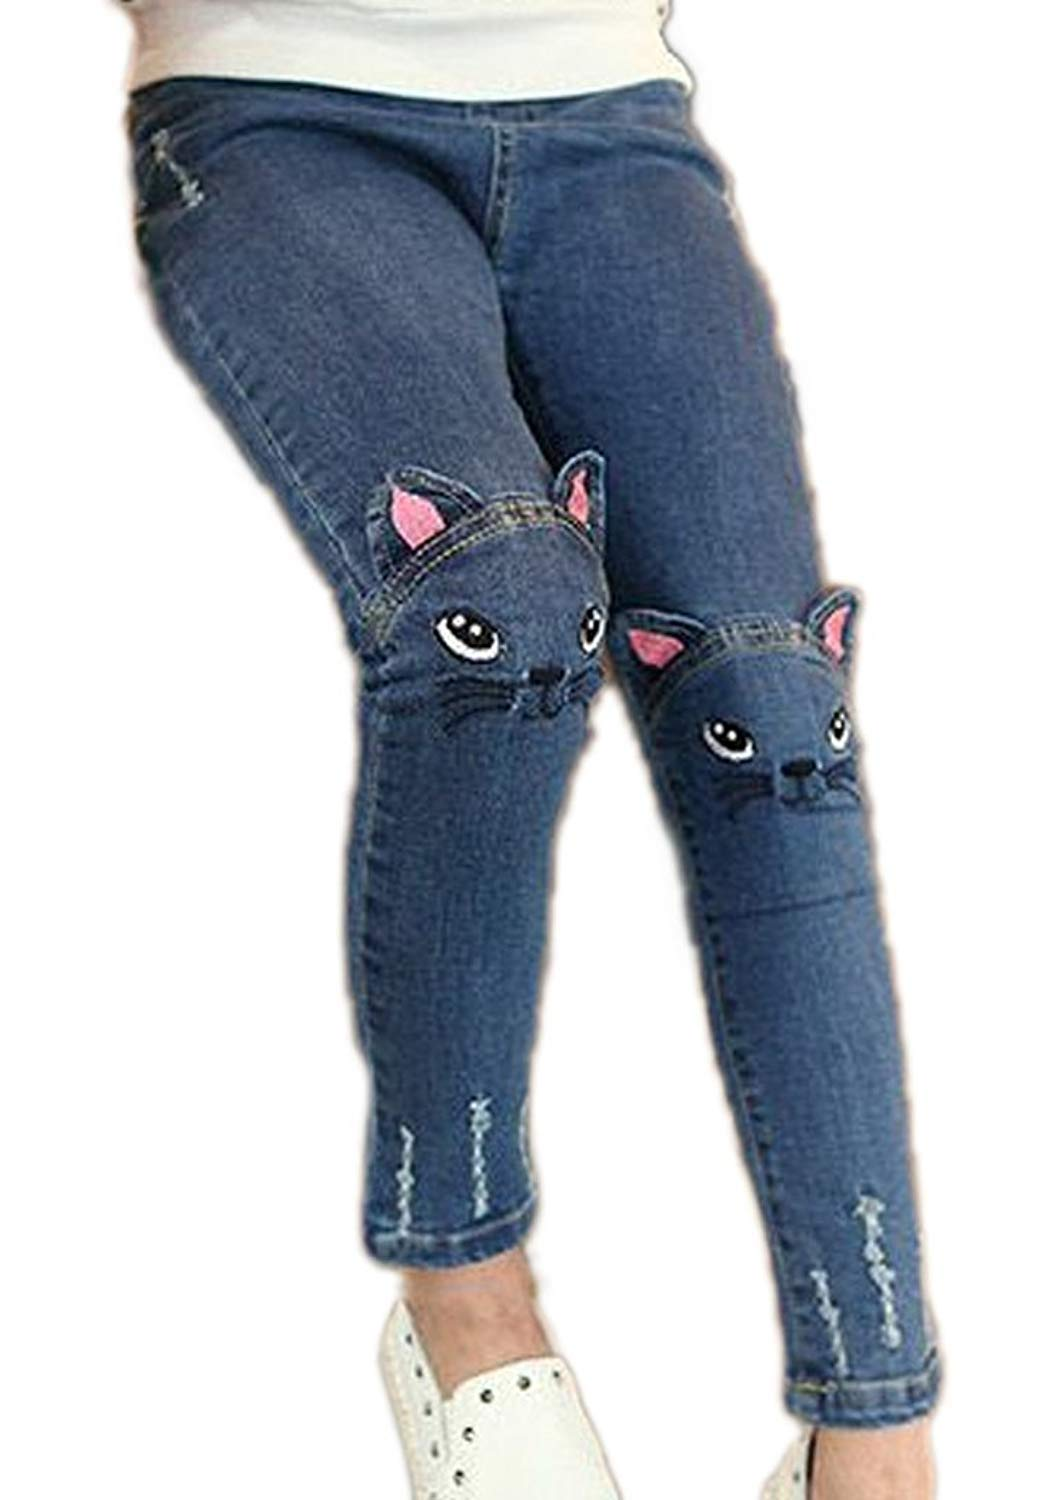 Big Girls Kids Distressed Ripped Hole Teens Jean Blue Cat Slim Denim Pants 18July08-12